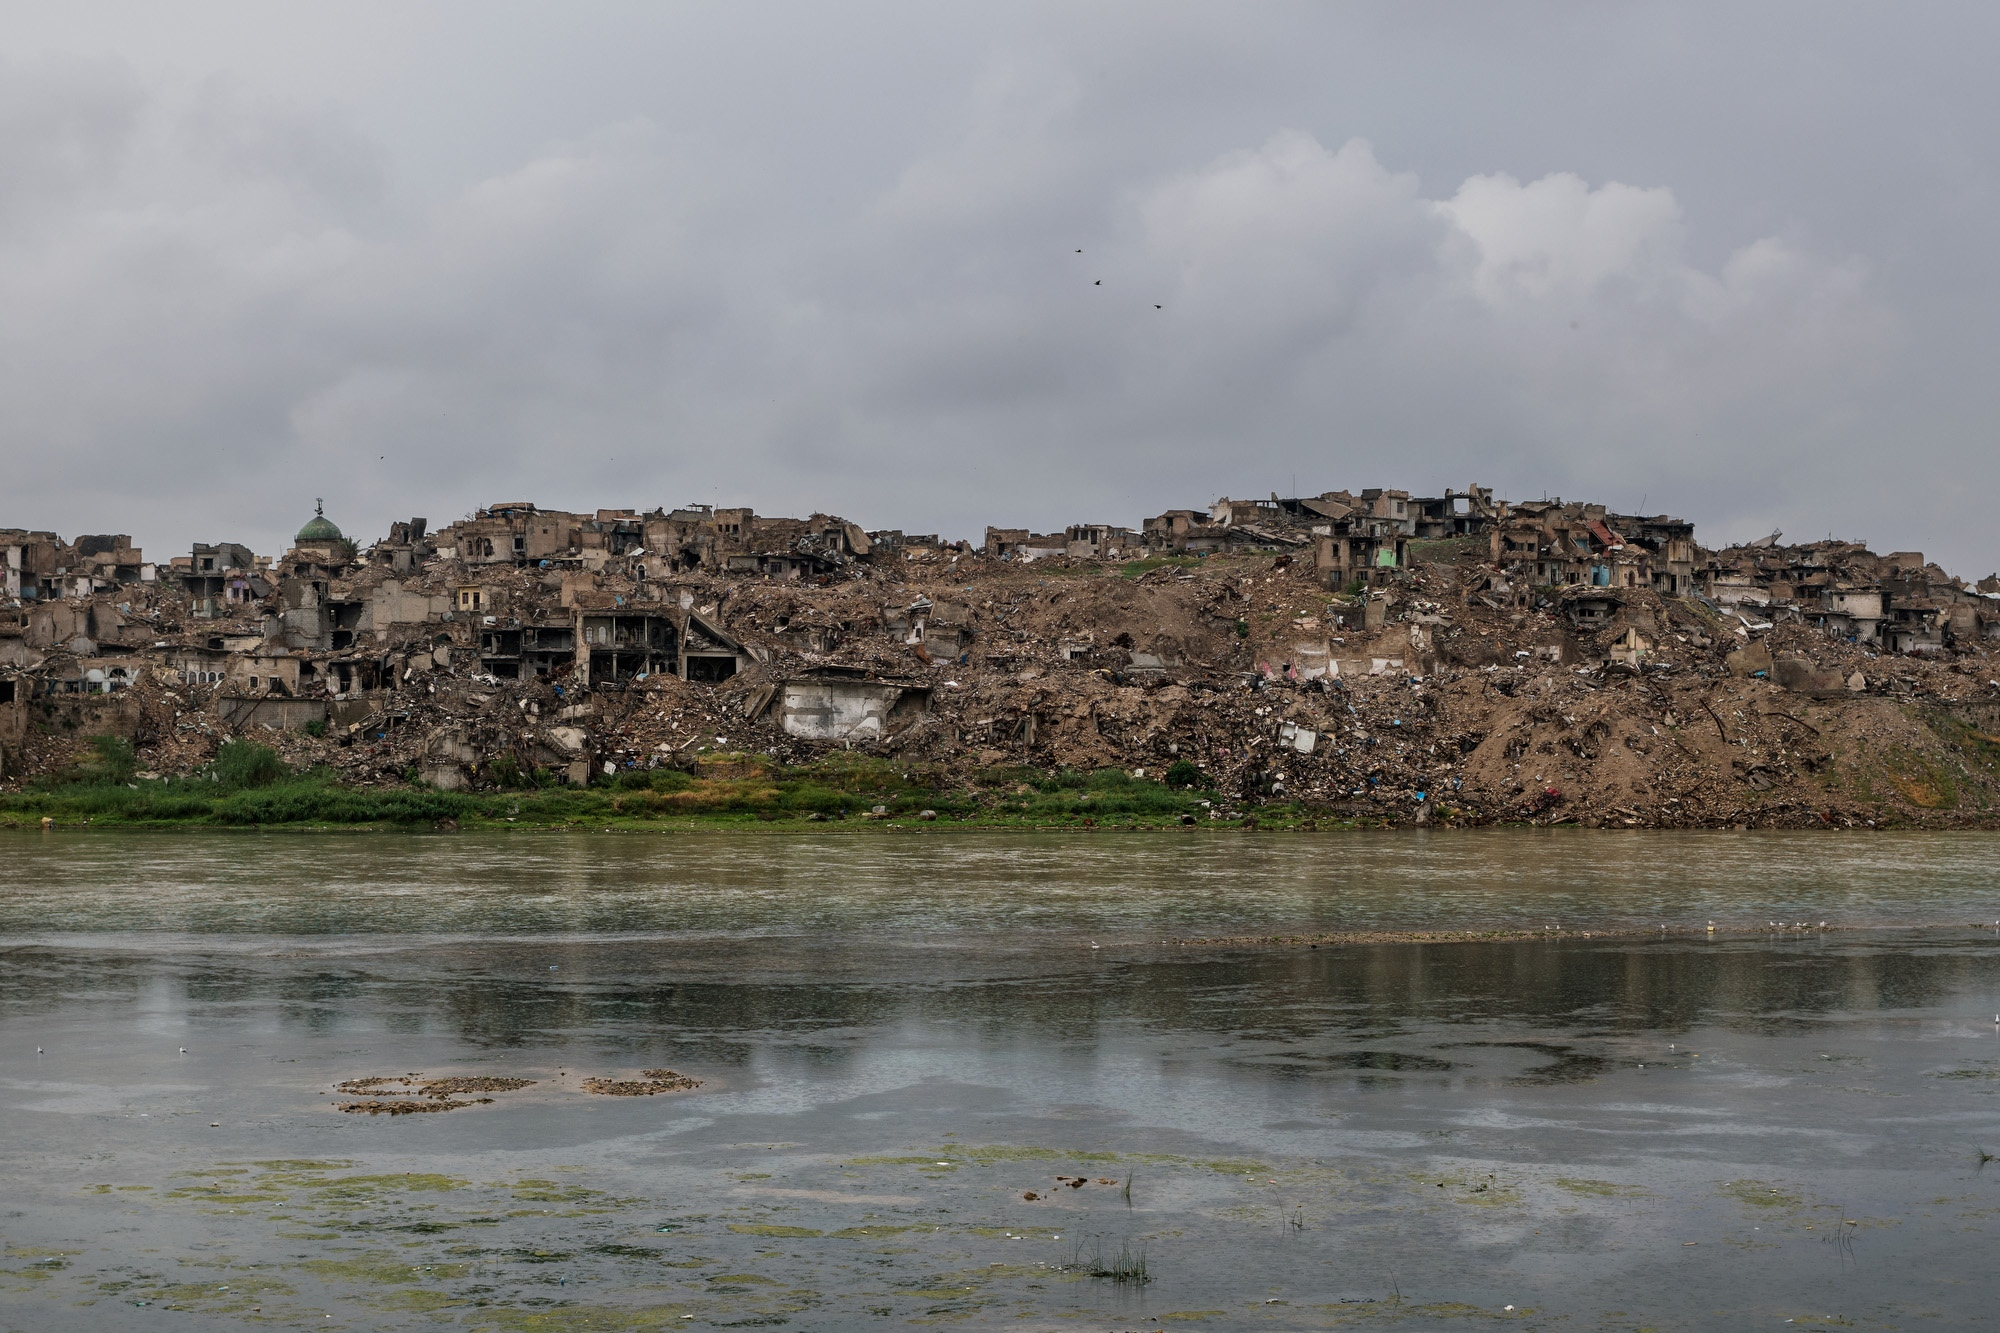 MOSUL 20180413 The ruins of old Mosul, which was hit the hardest by the battle for the city and coalition airstrikes, on the other side of the Tigris river. Photo: Vilhelm Stokstad / Kontinent